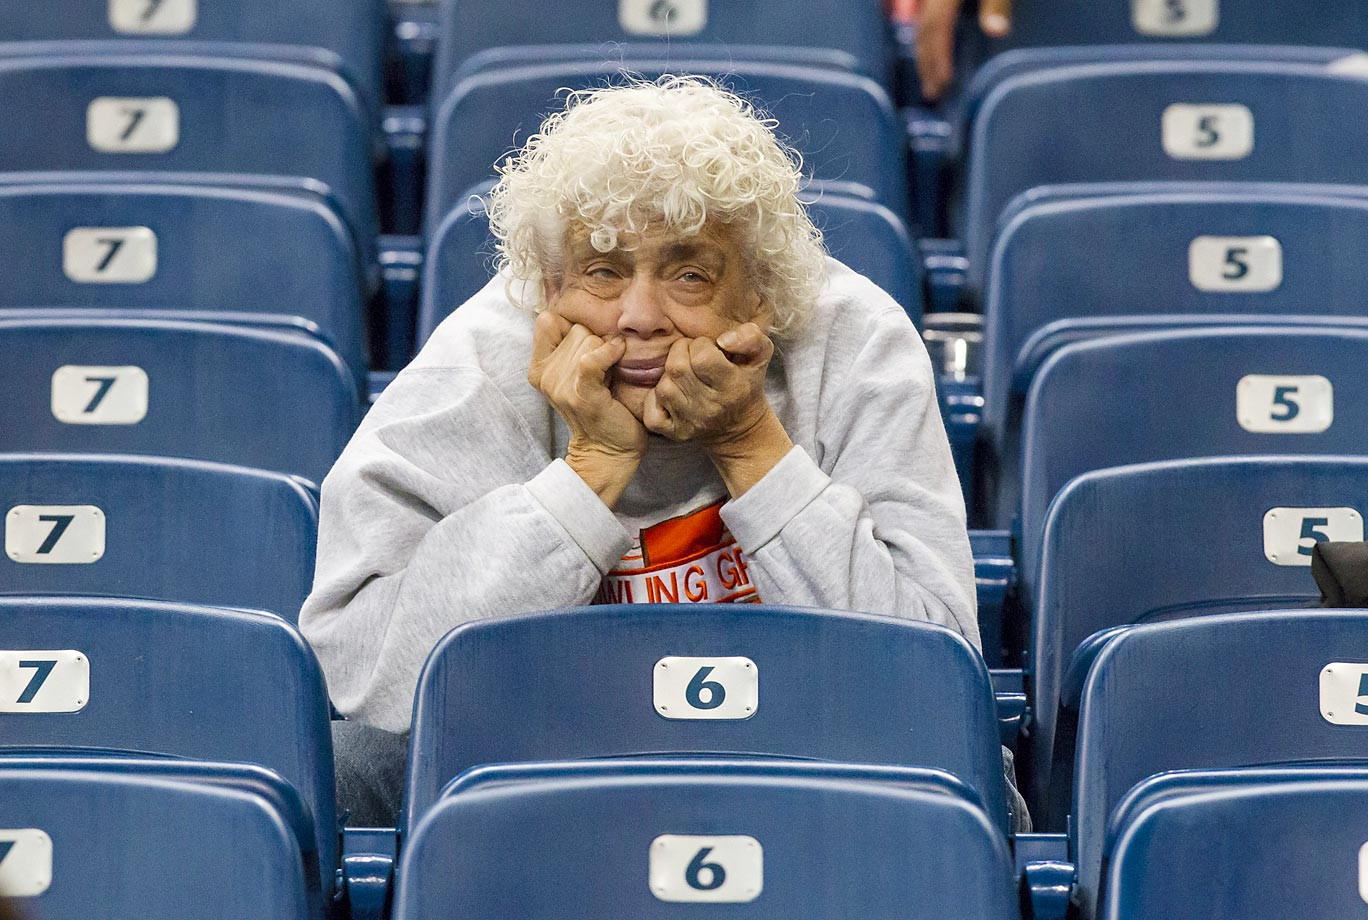 A Bowling Green fan does not appear to be happy at a game against Northern Illinois...   Bowling Green lost 51-17.